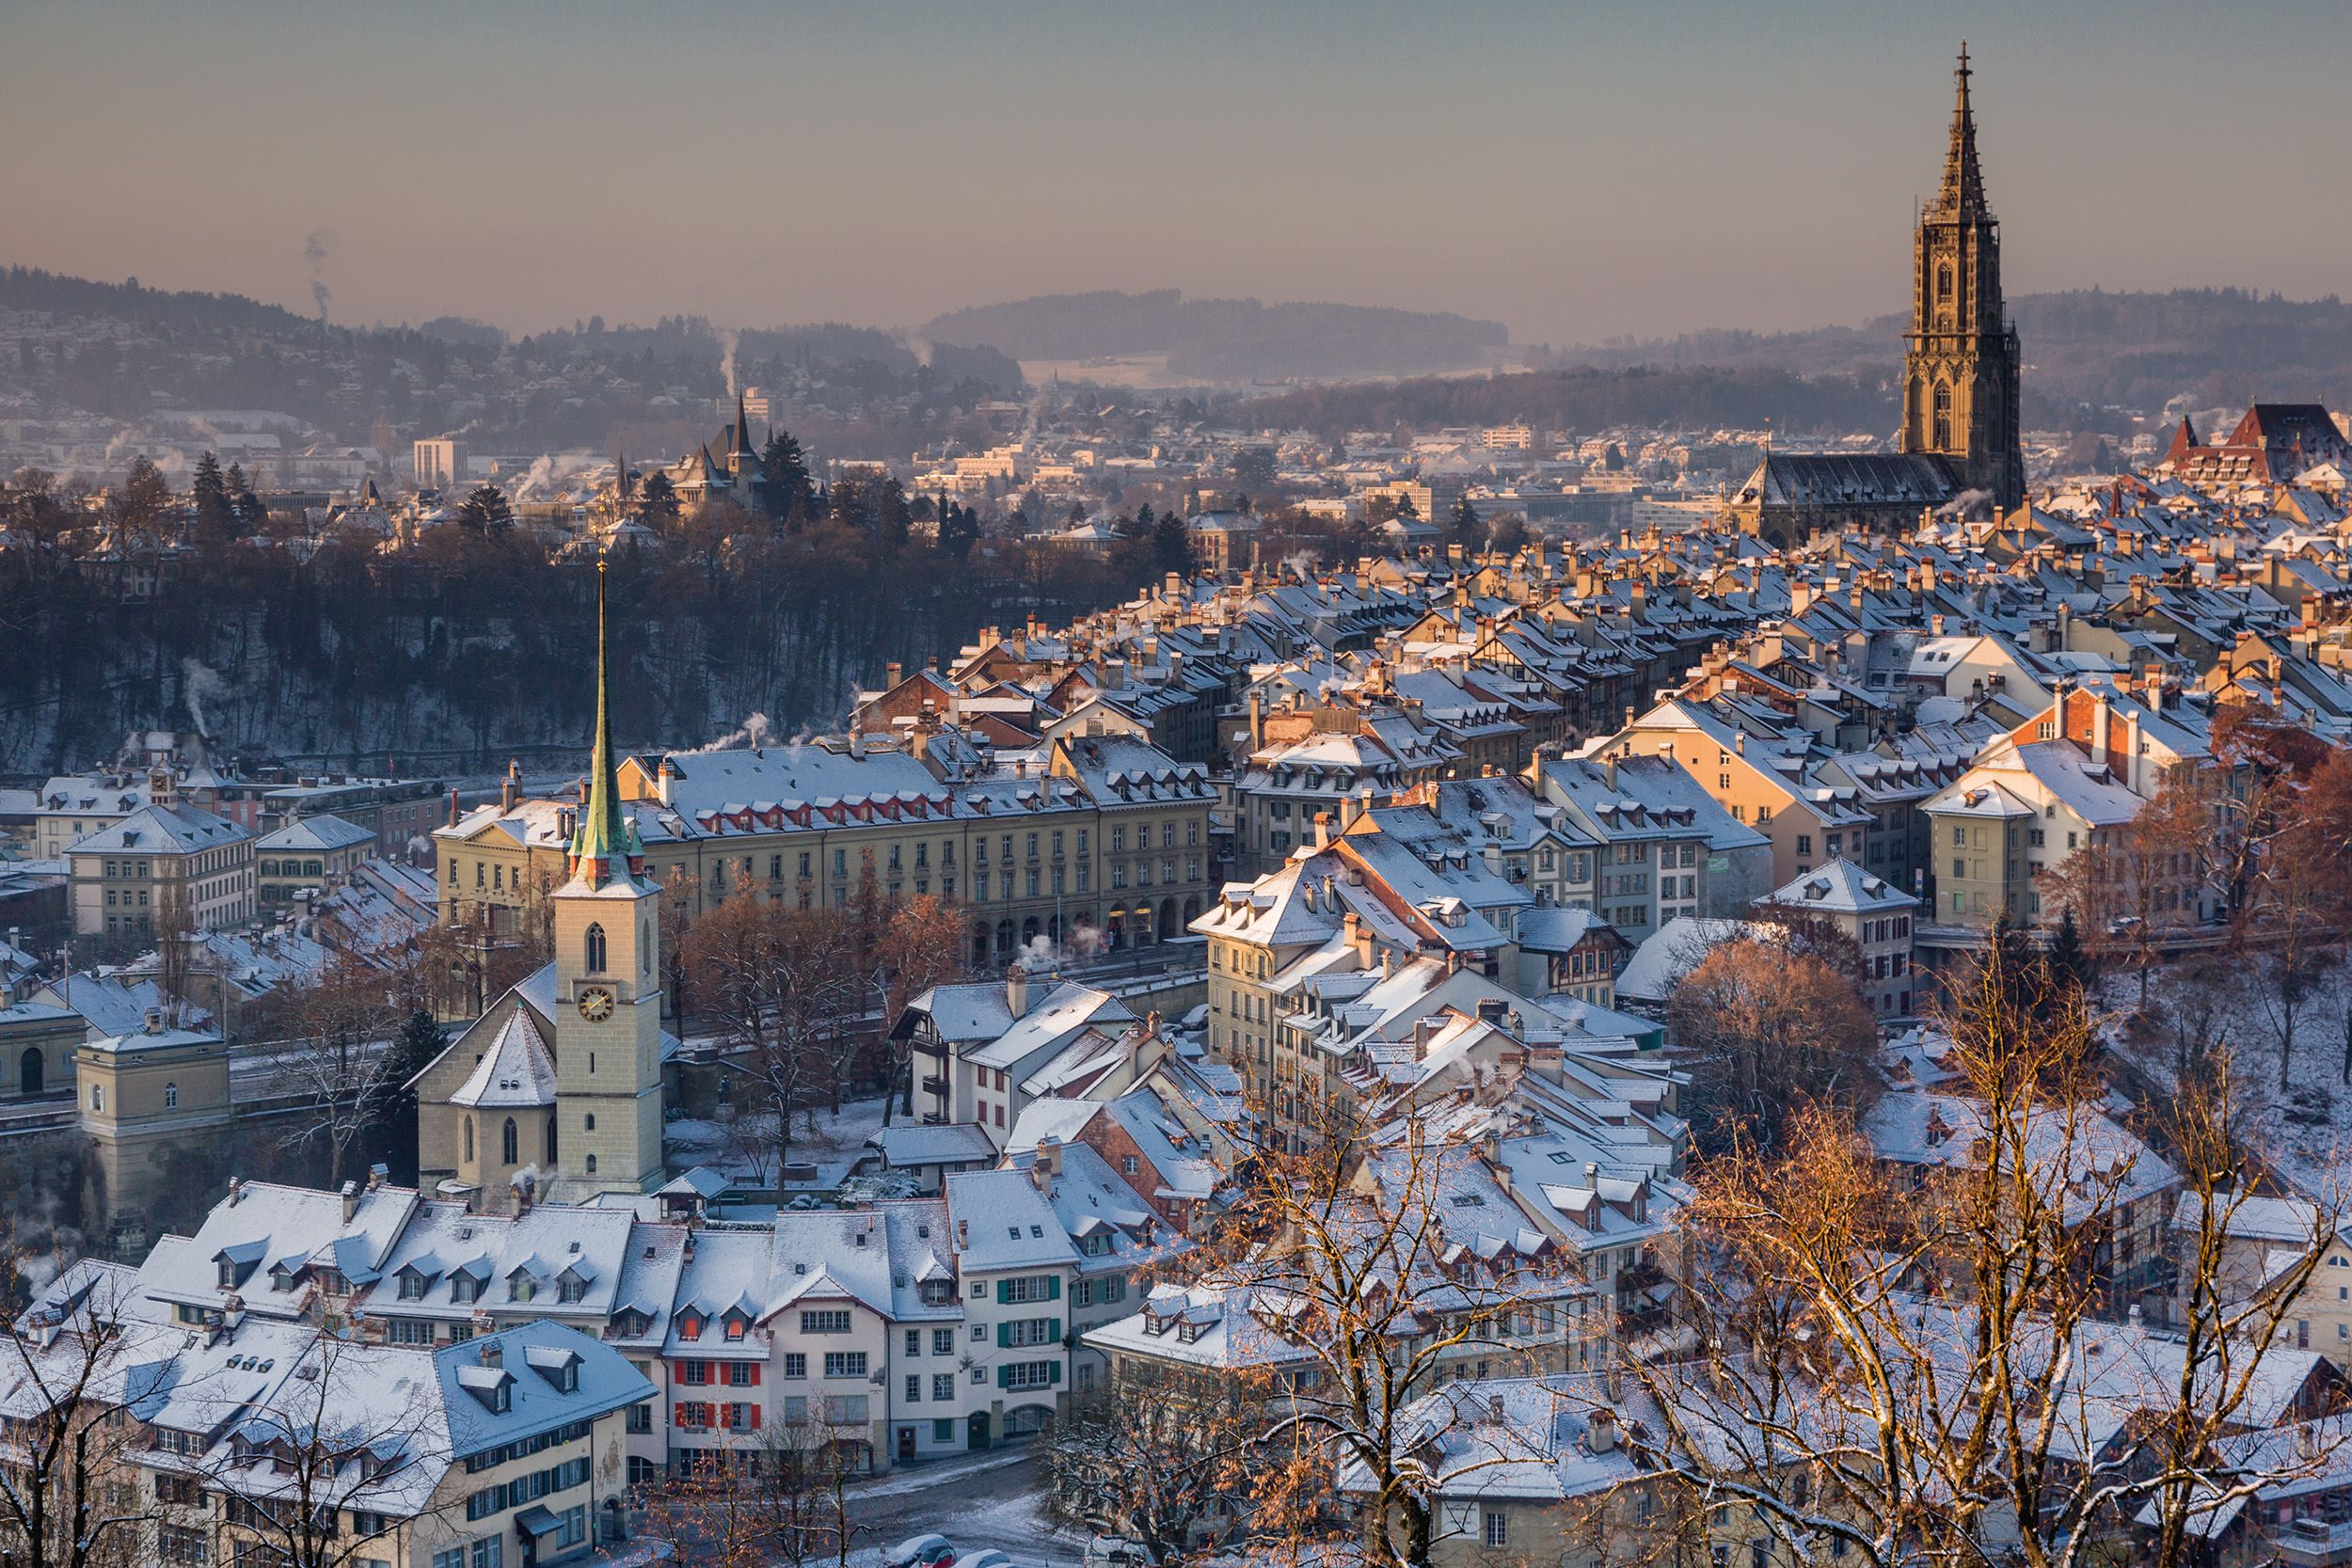 Bern, the underrated Swiss capital to visit on a winter city break